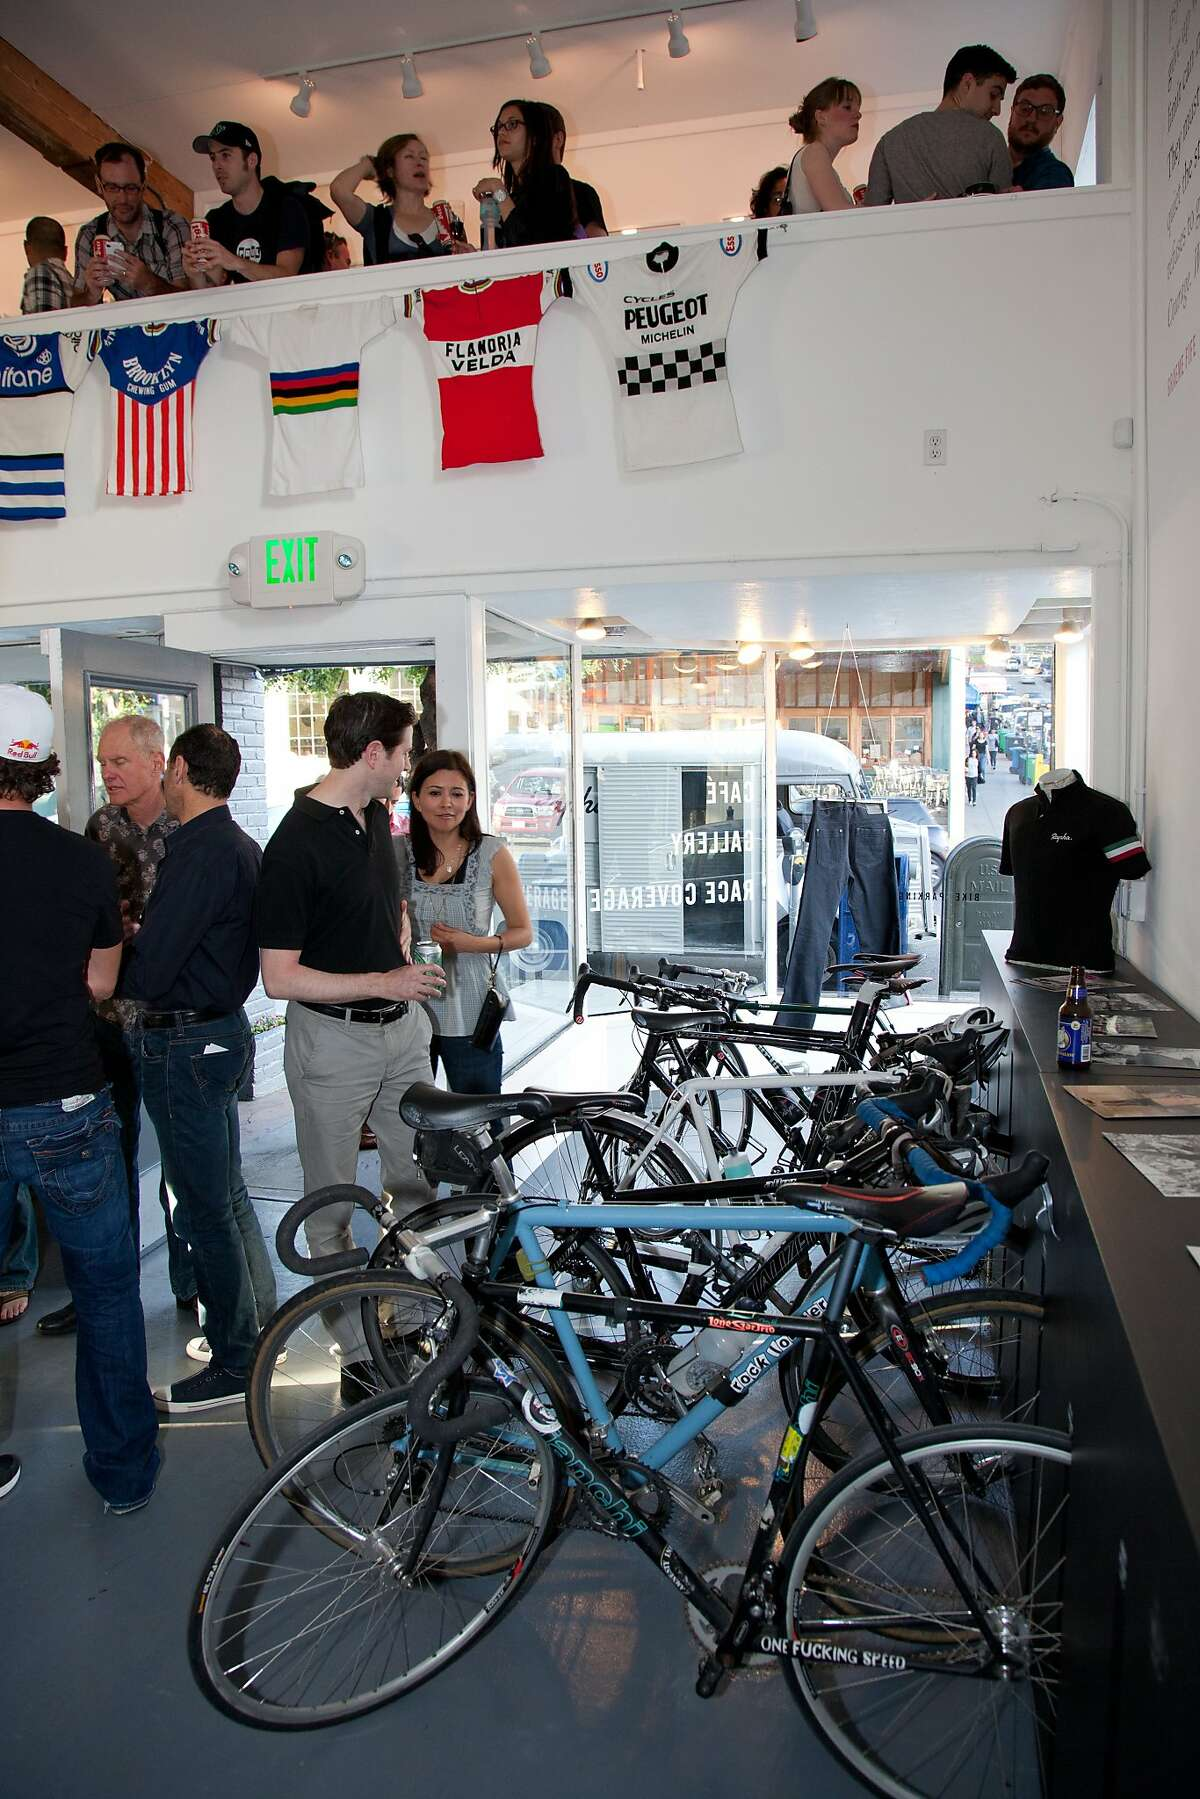 Rapha Cycle Club is a cycling hot spot that serves Four Barrel Coffee and Red Blossom Tea and fancy pastries as well as selling biking gear.